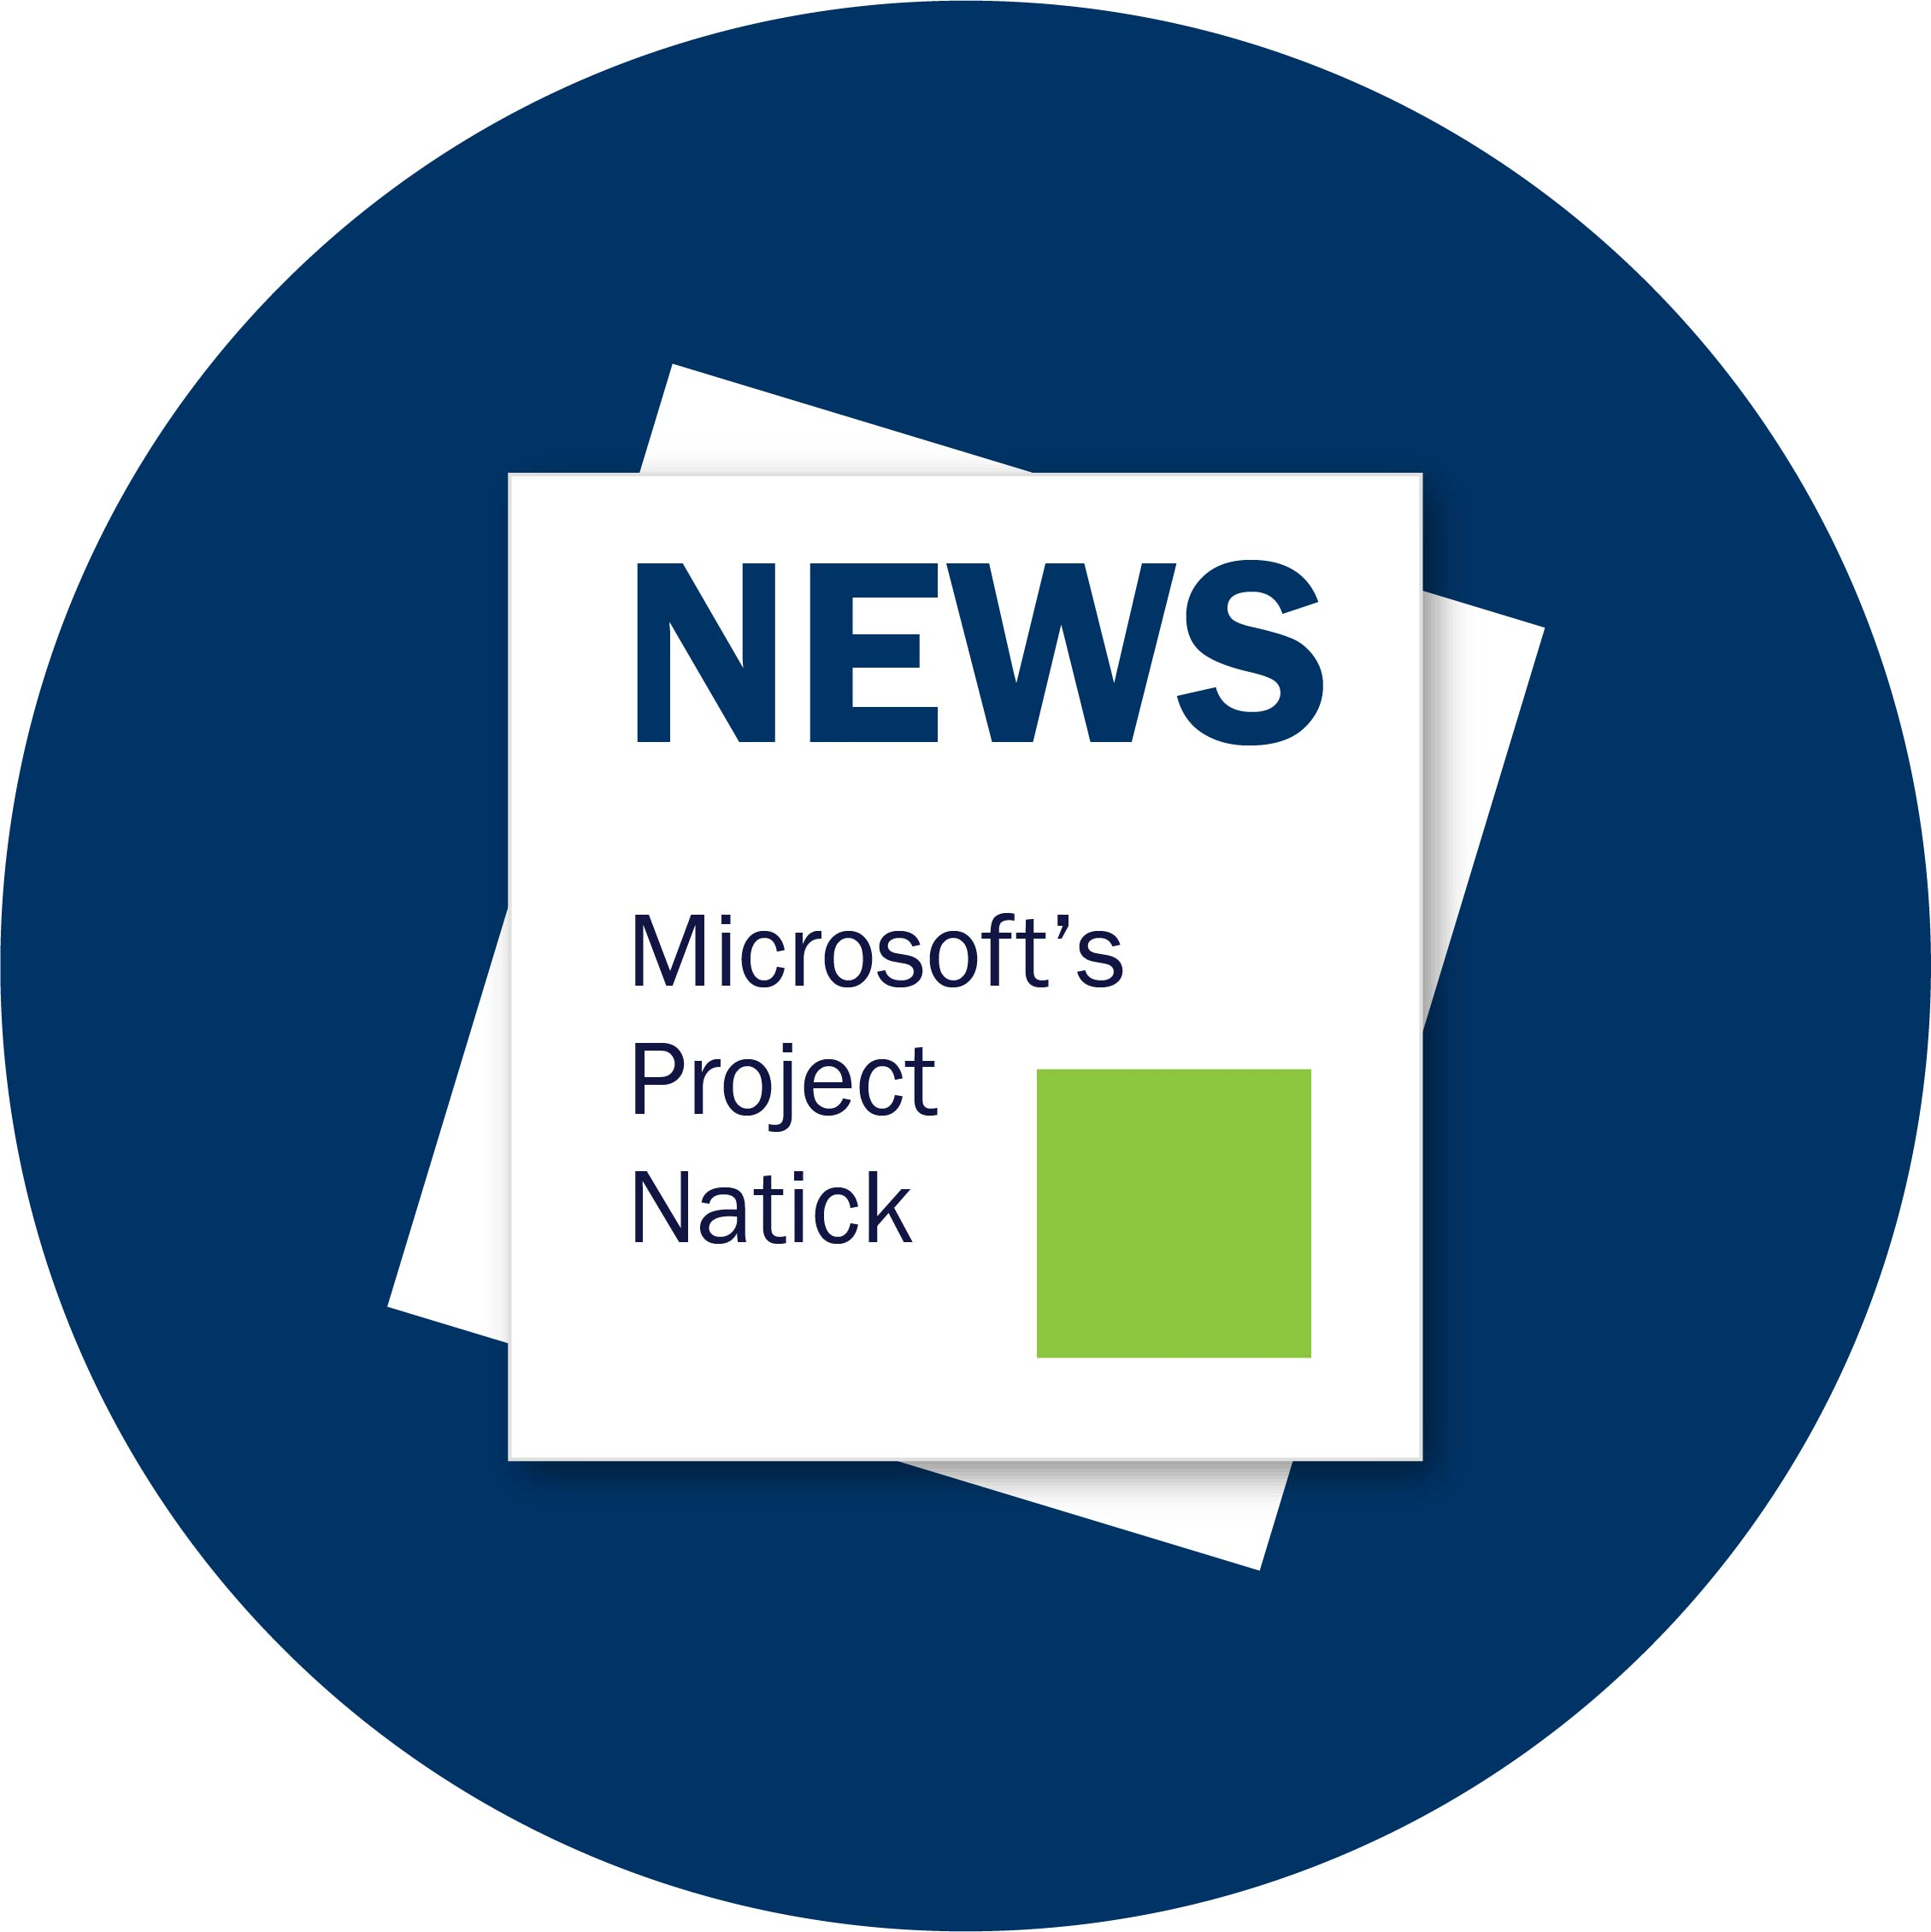 In the News: Microsoft's Project Natick